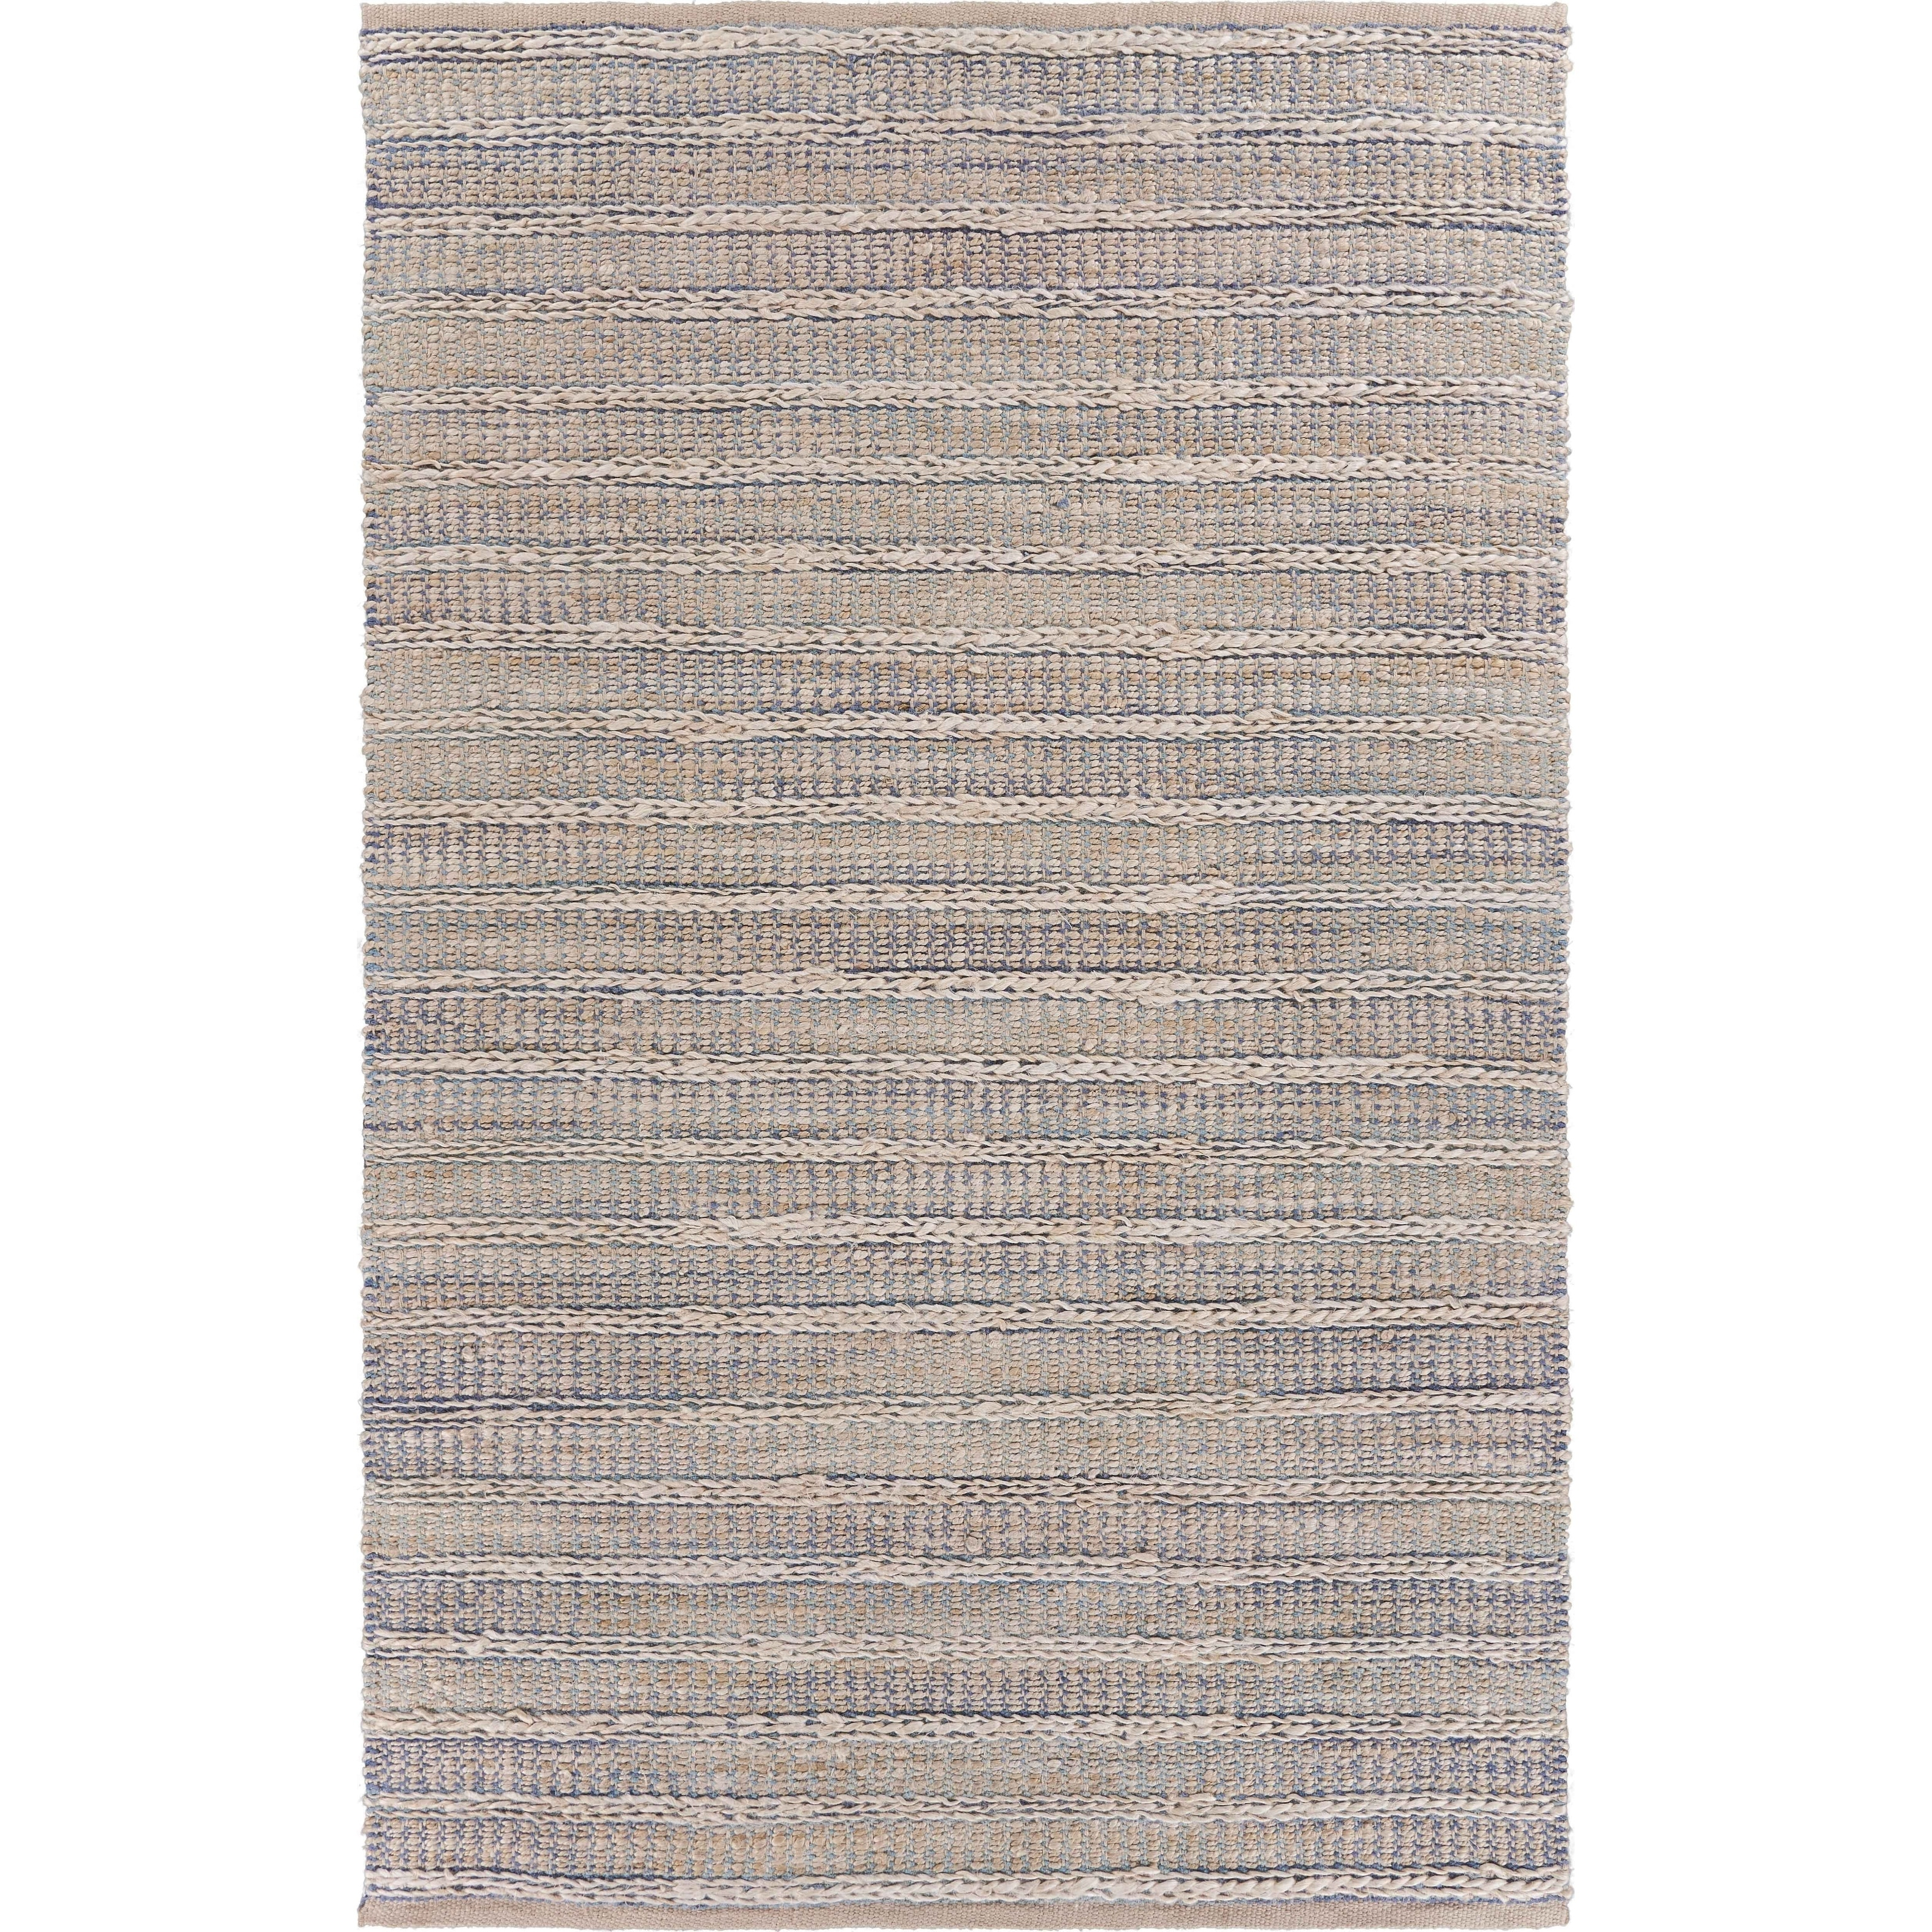 Shop Lr Home Touch Of Sky Jute Area Rug 9 X 12 9 X 12 Overstock 28503516